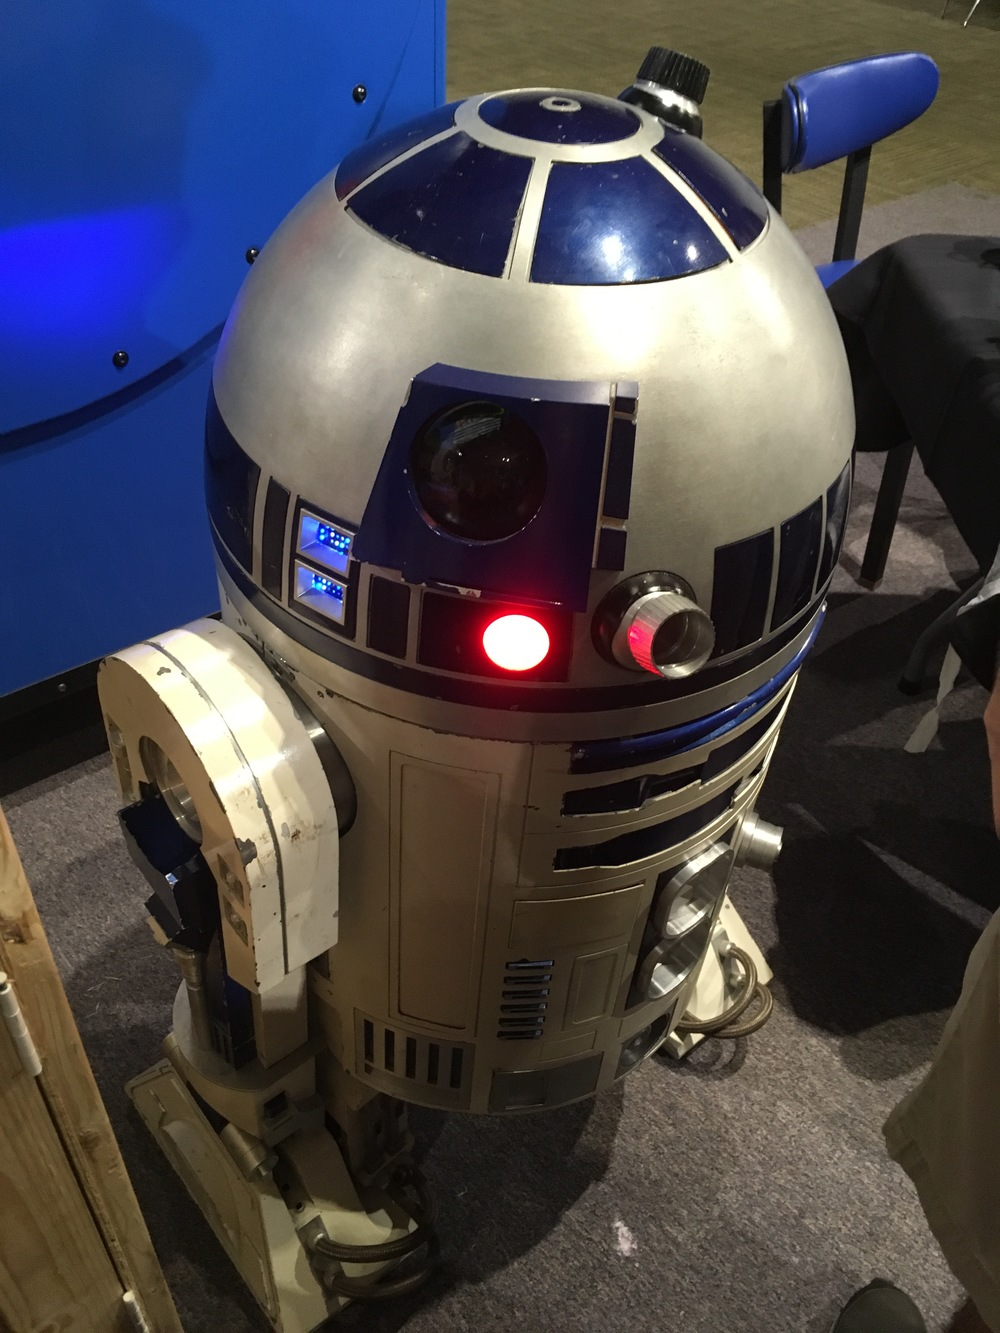 R2-D2, what are you doing here?  Oh, you're helping with the robotics lab demonstration.  That's awesome!